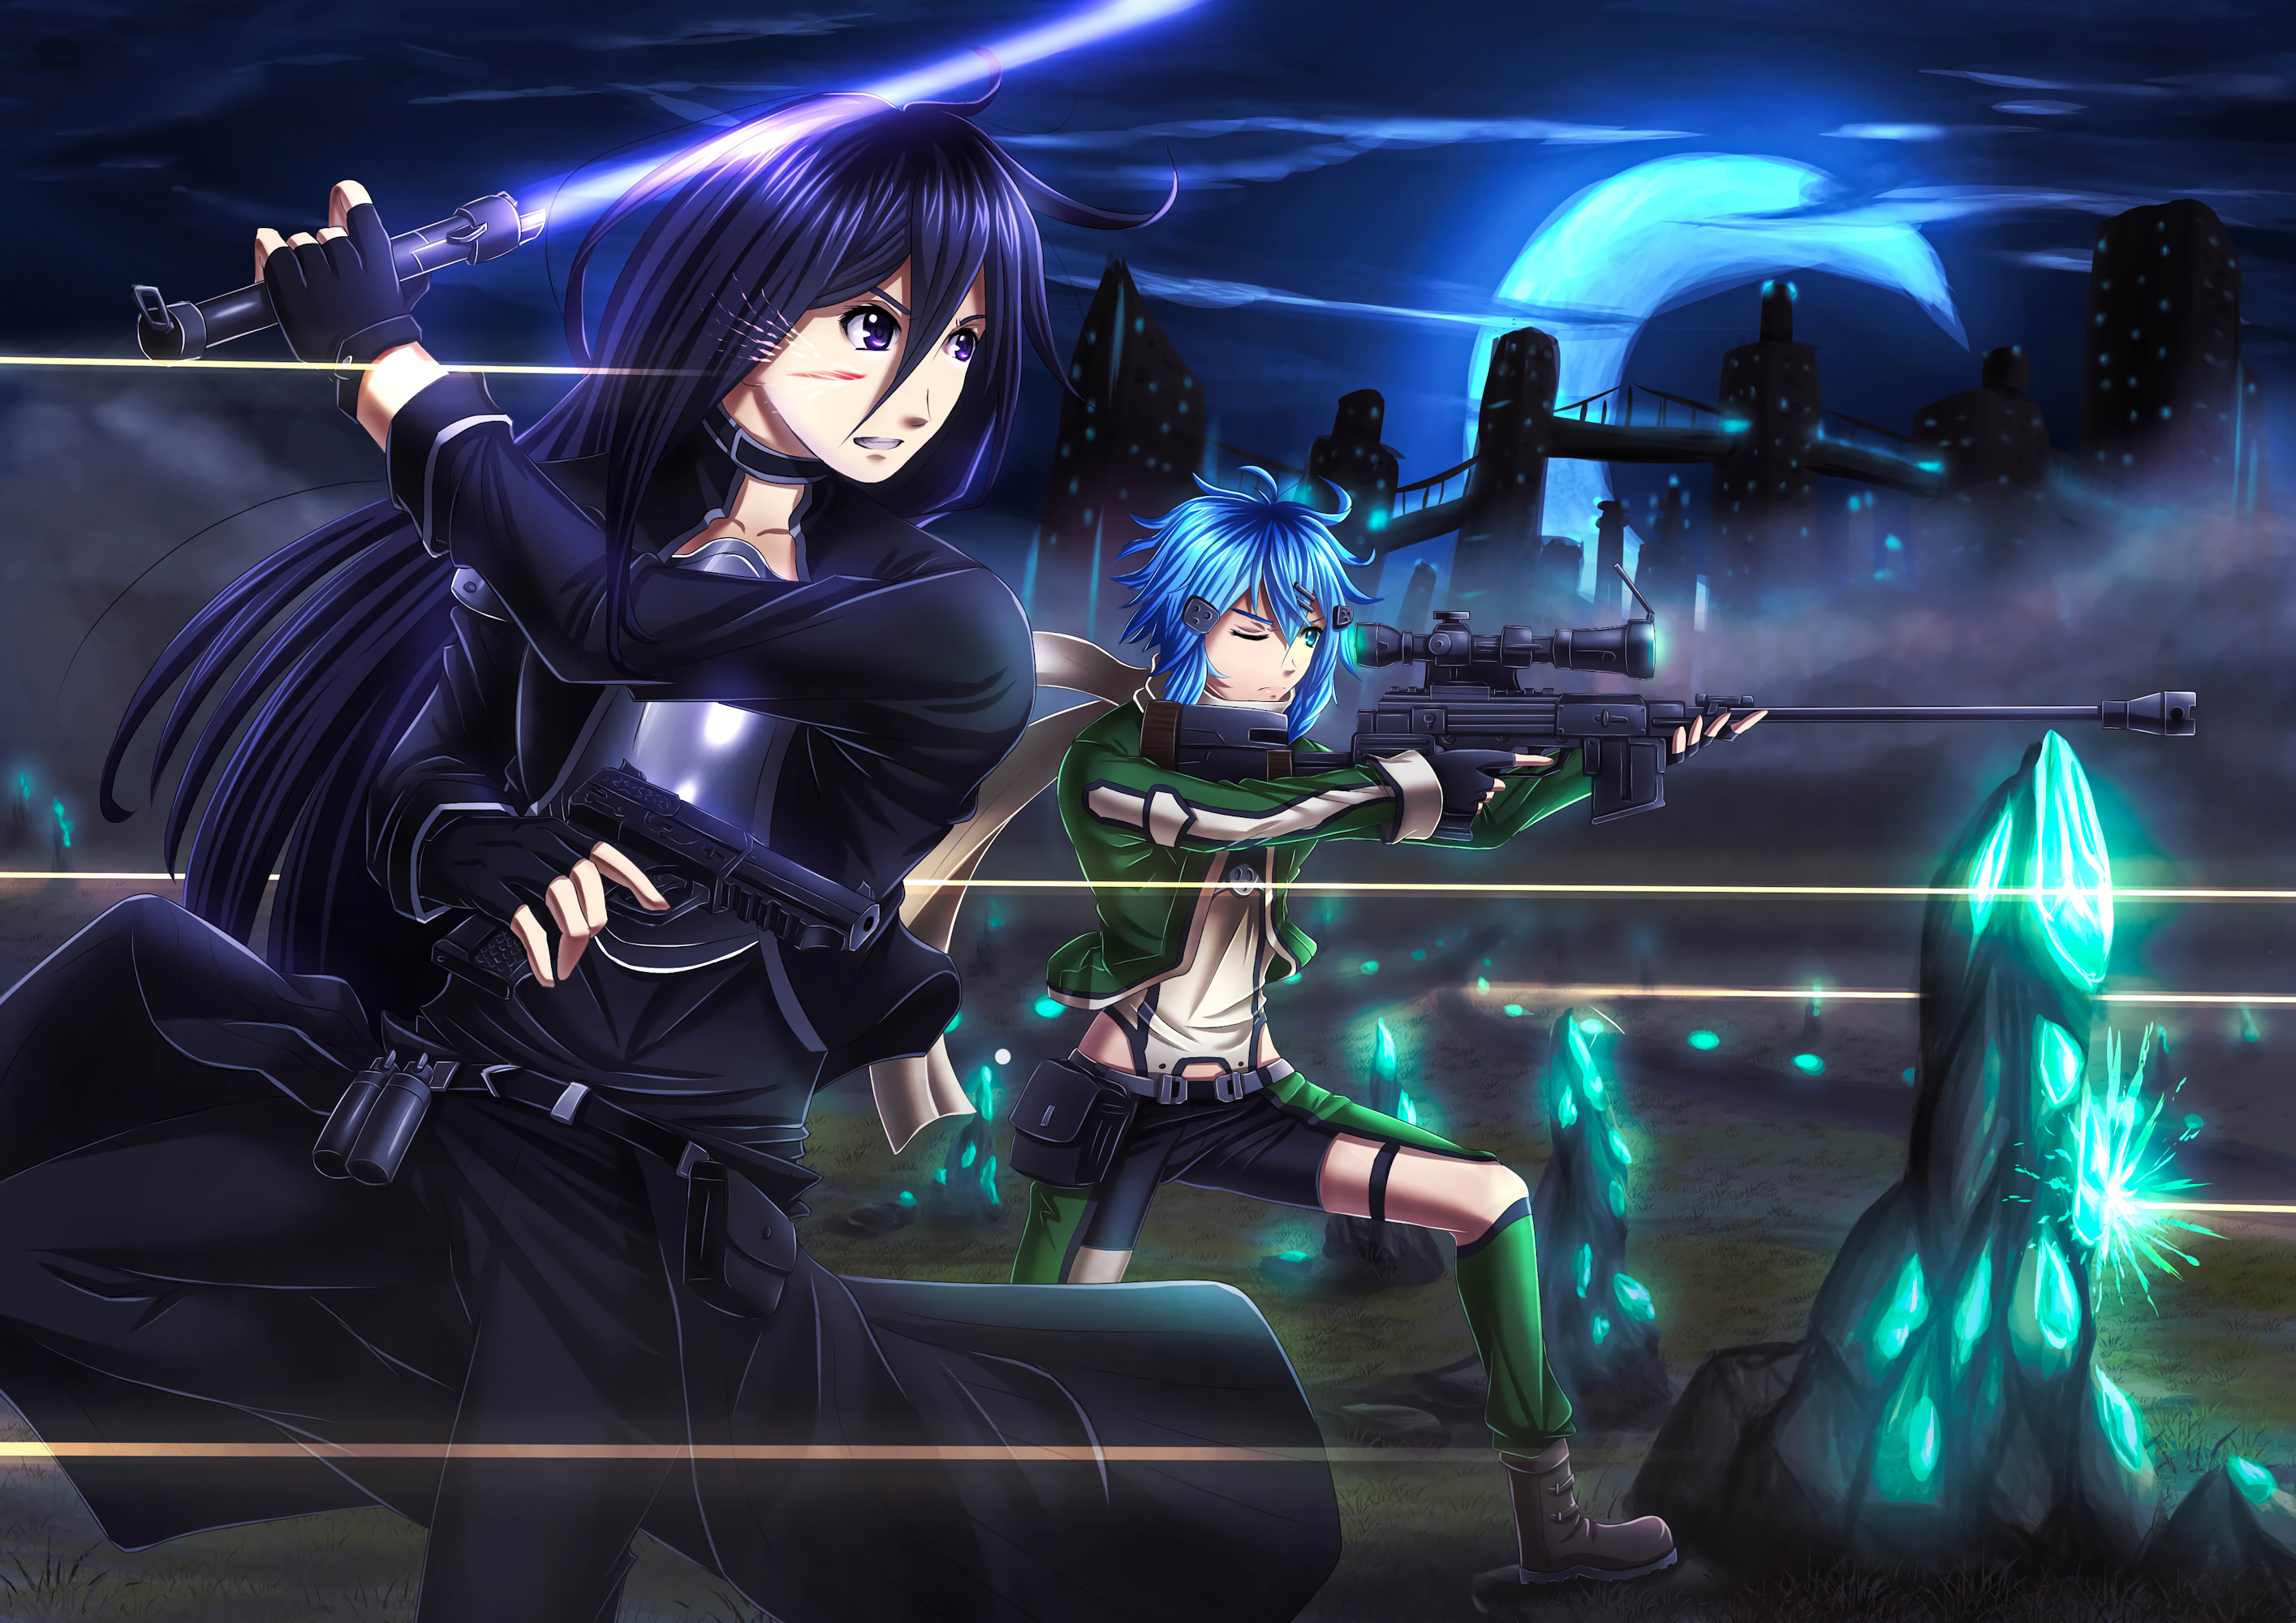 Image Result For Wallpaper Anime Sao Androida